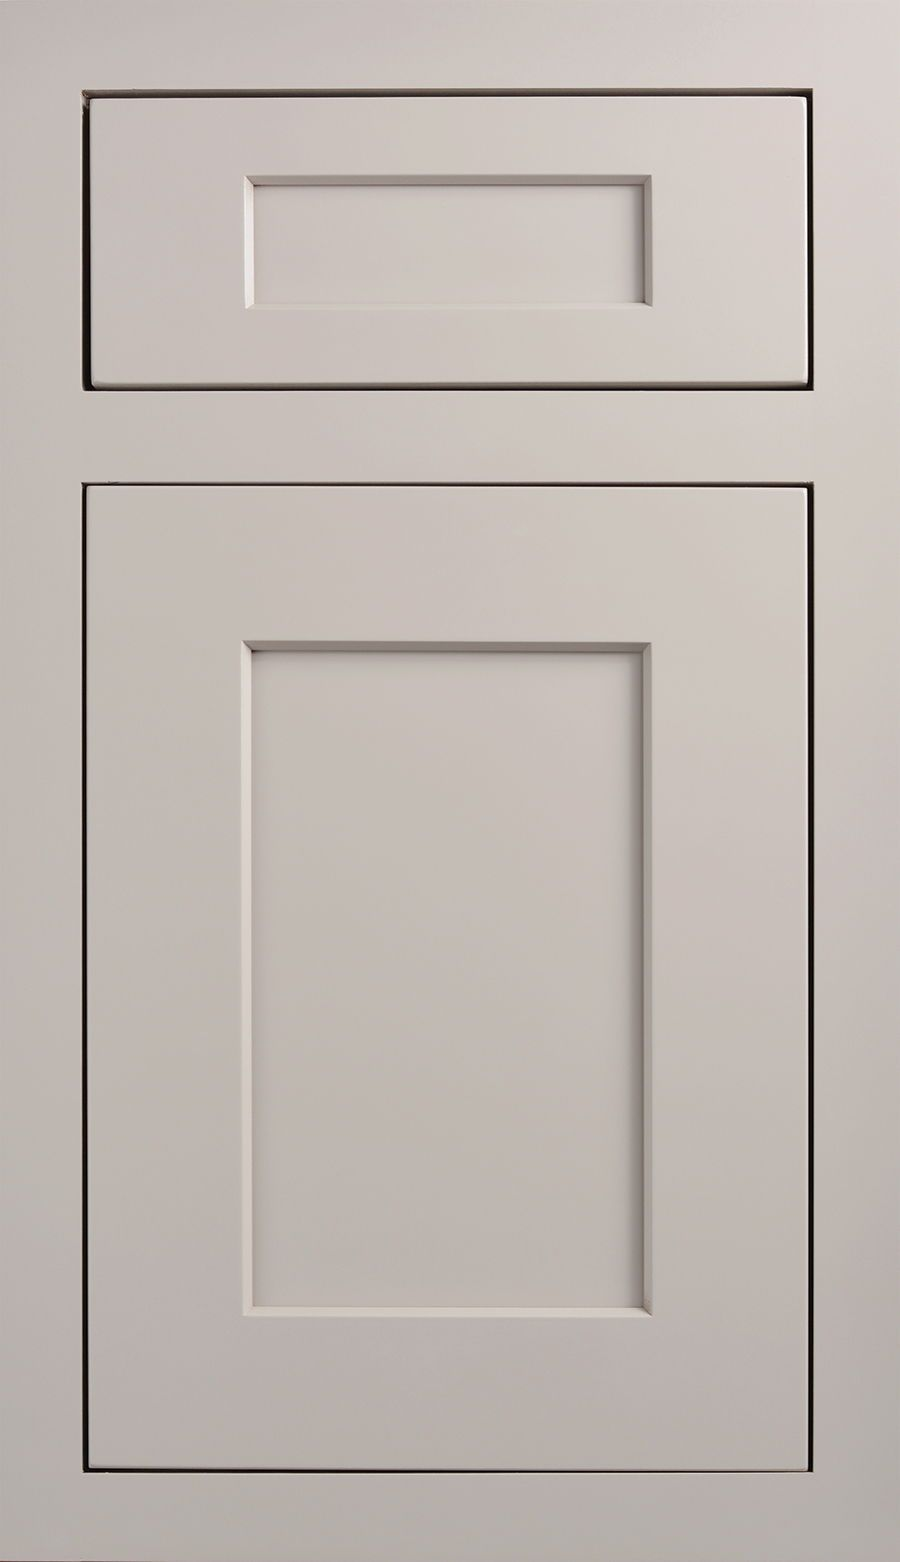 Dura Supreme Cabinetry Door Style Carson Inset Cabinet Door Style Shown In The Cashmere Painted Cabinet Door Styles Kitchen Cabinet Door Styles Inset Cabinets